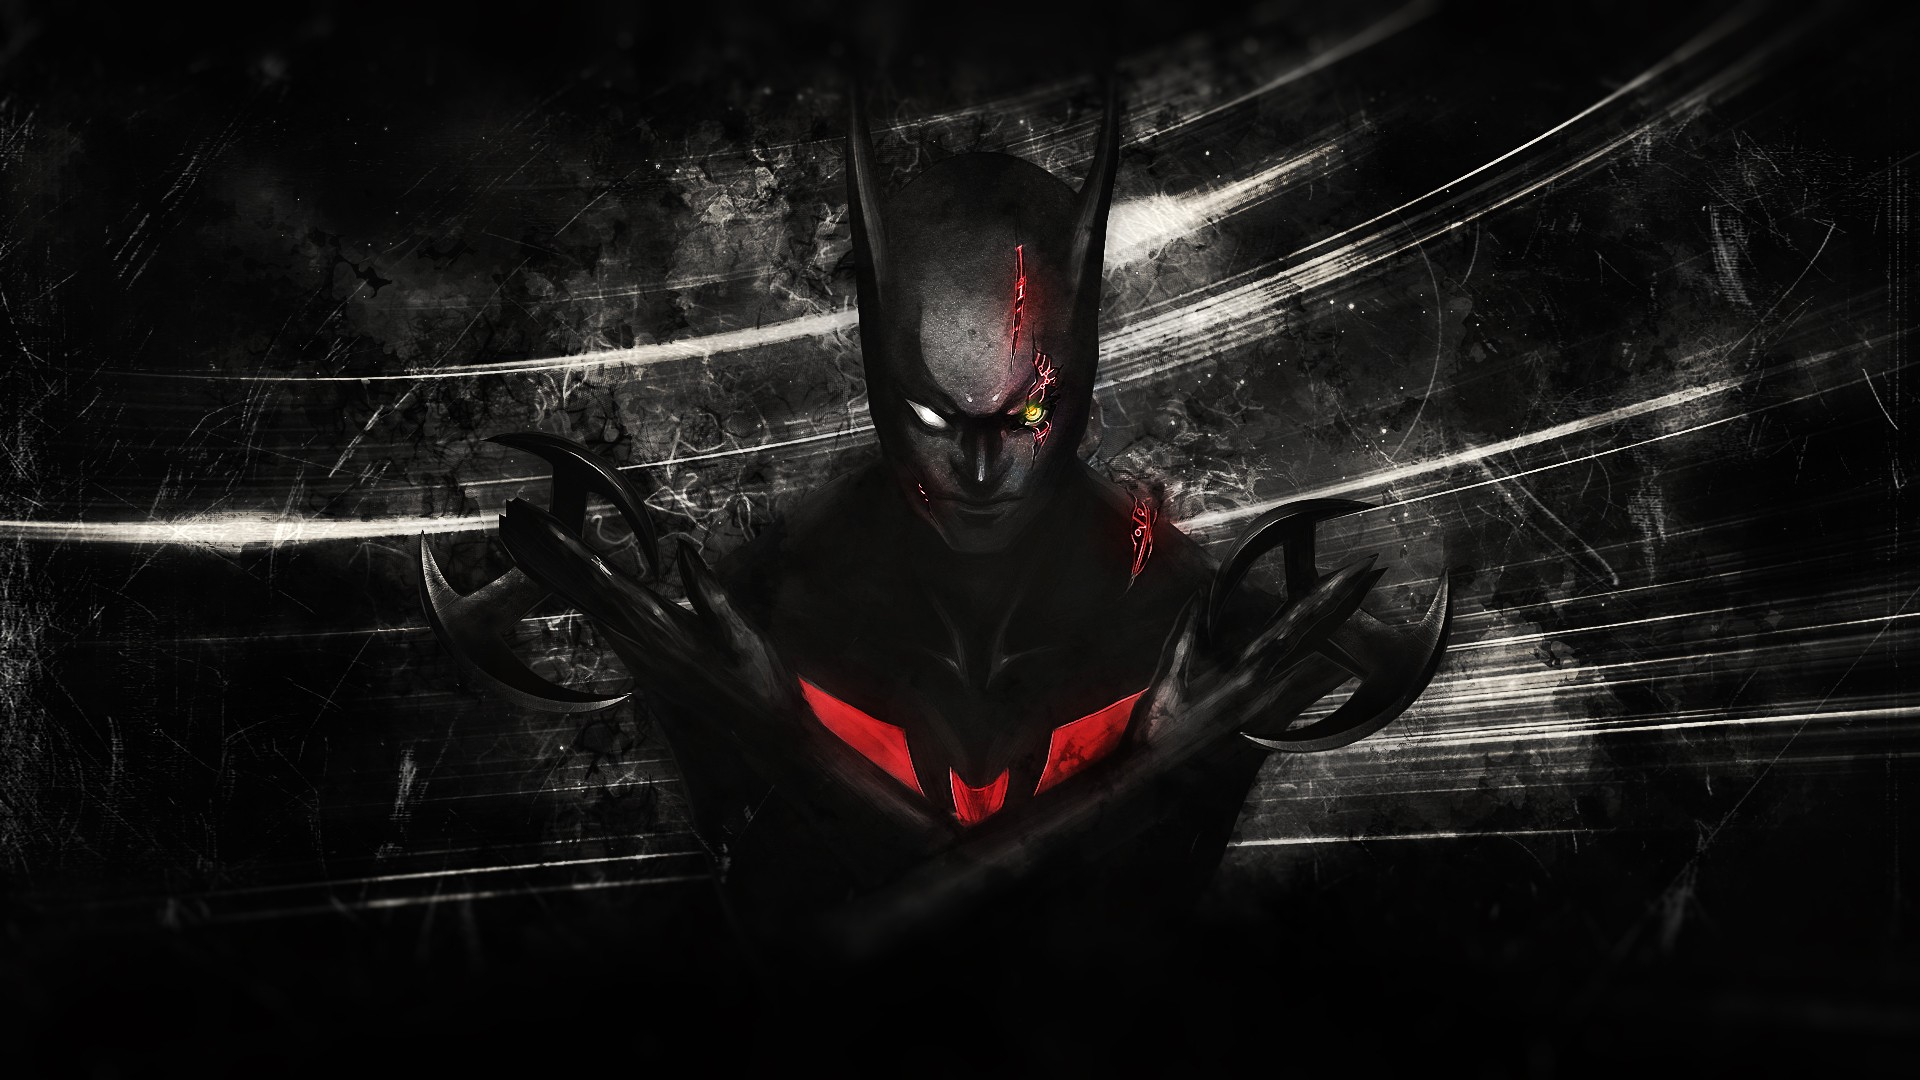 batman wallpapers beyond wallpaper mac 1920x1080 1920x1080